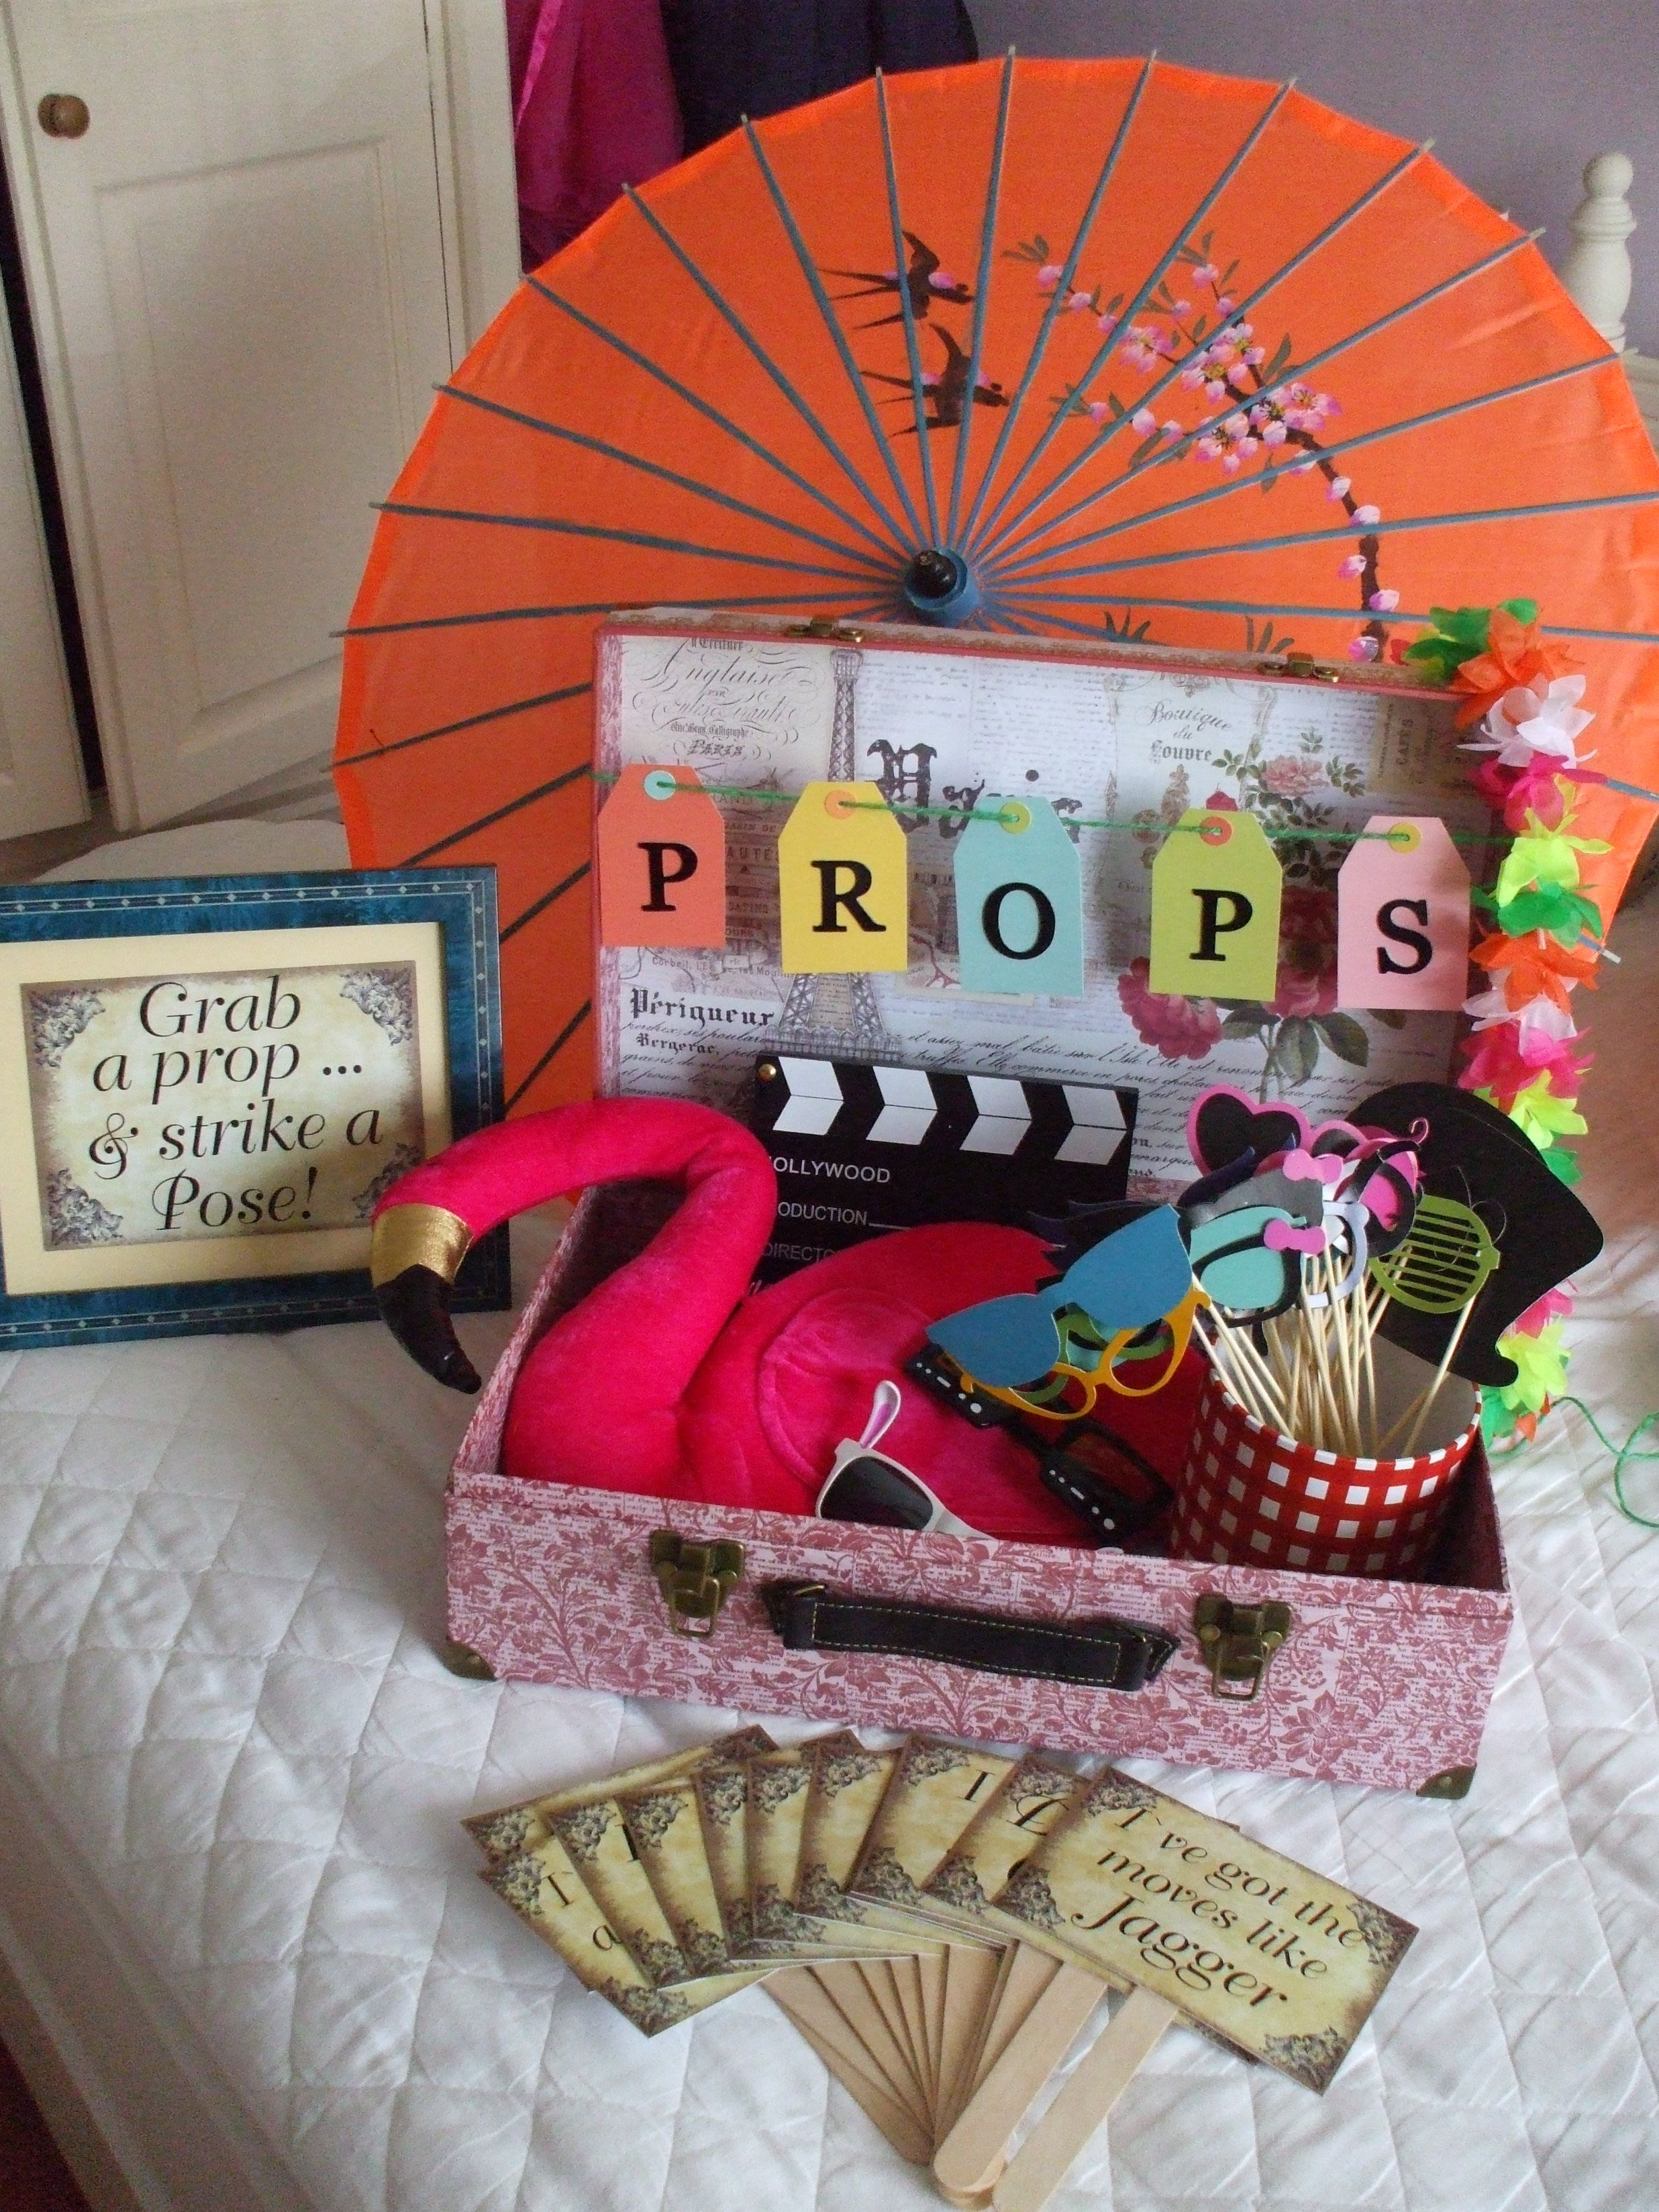 props for wedding 30/05/14